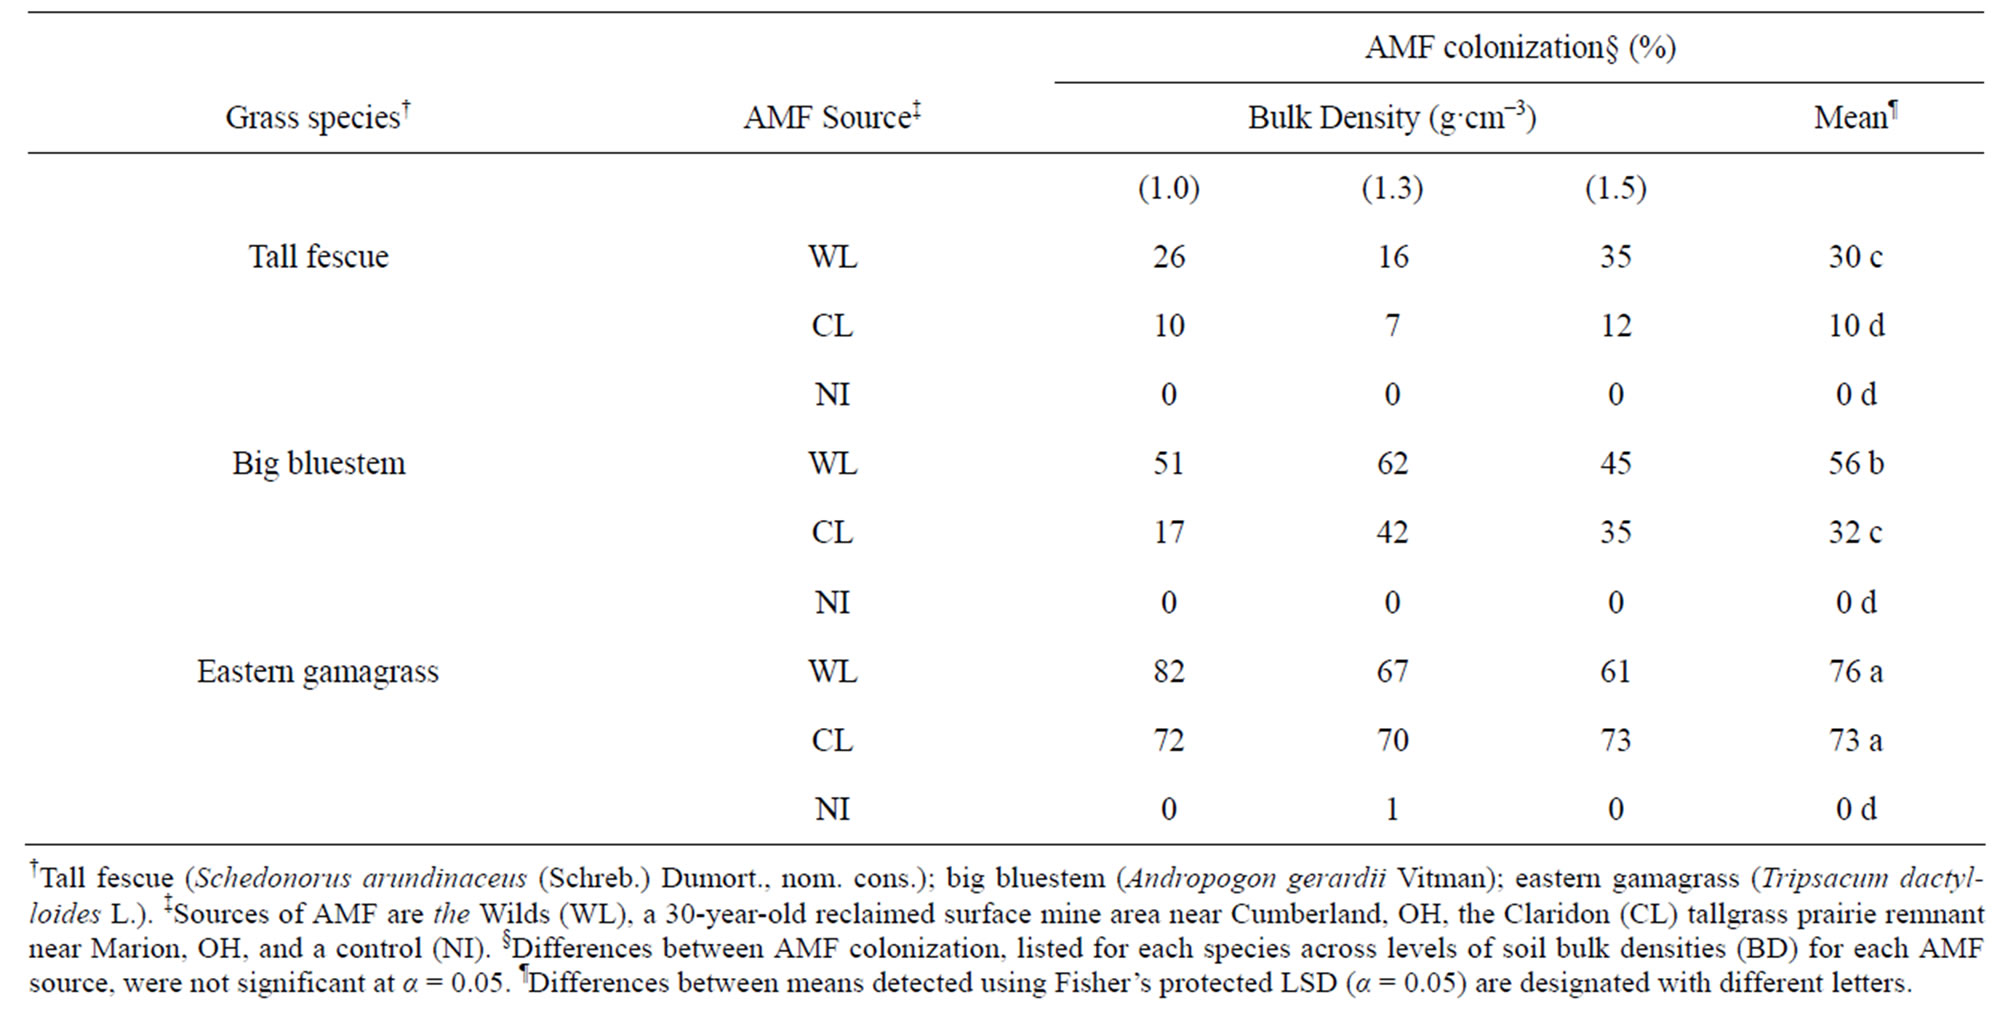 Amf Bz soil compaction and arbuscular mycorrhizae affect seedling